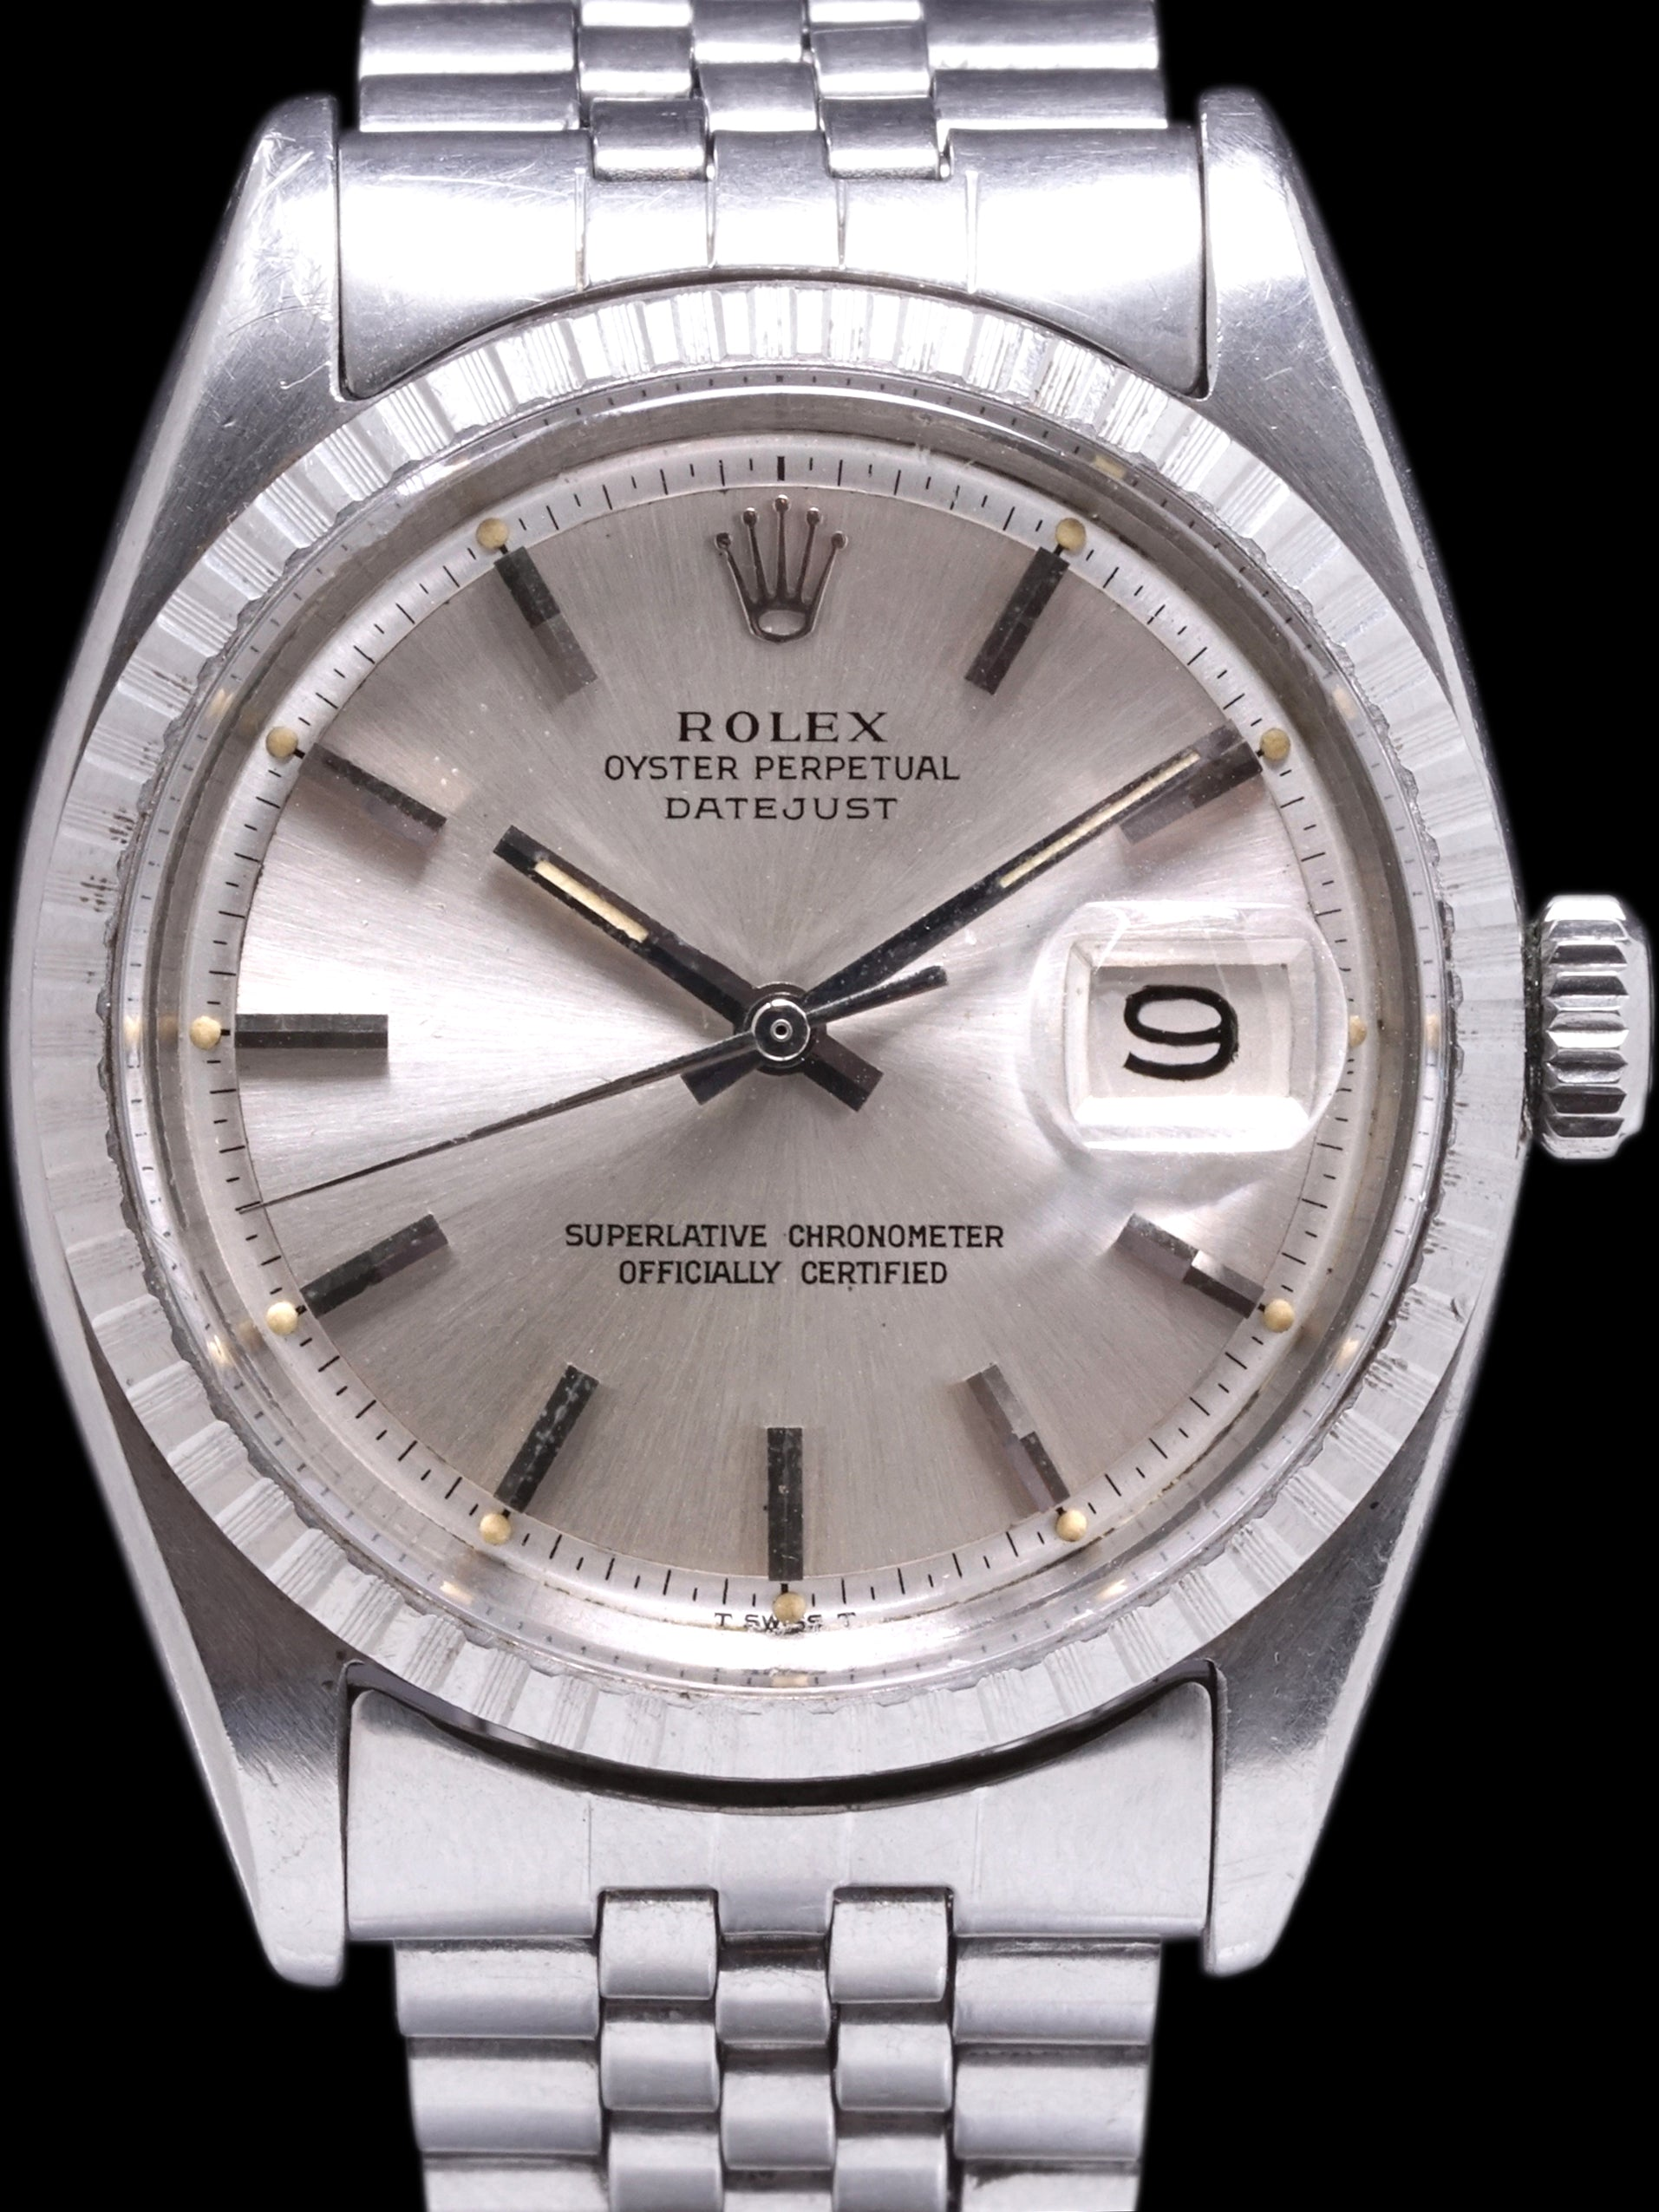 1966 Rolex Datejust (Ref. 1603) Silver Dial W/ Box & Papers